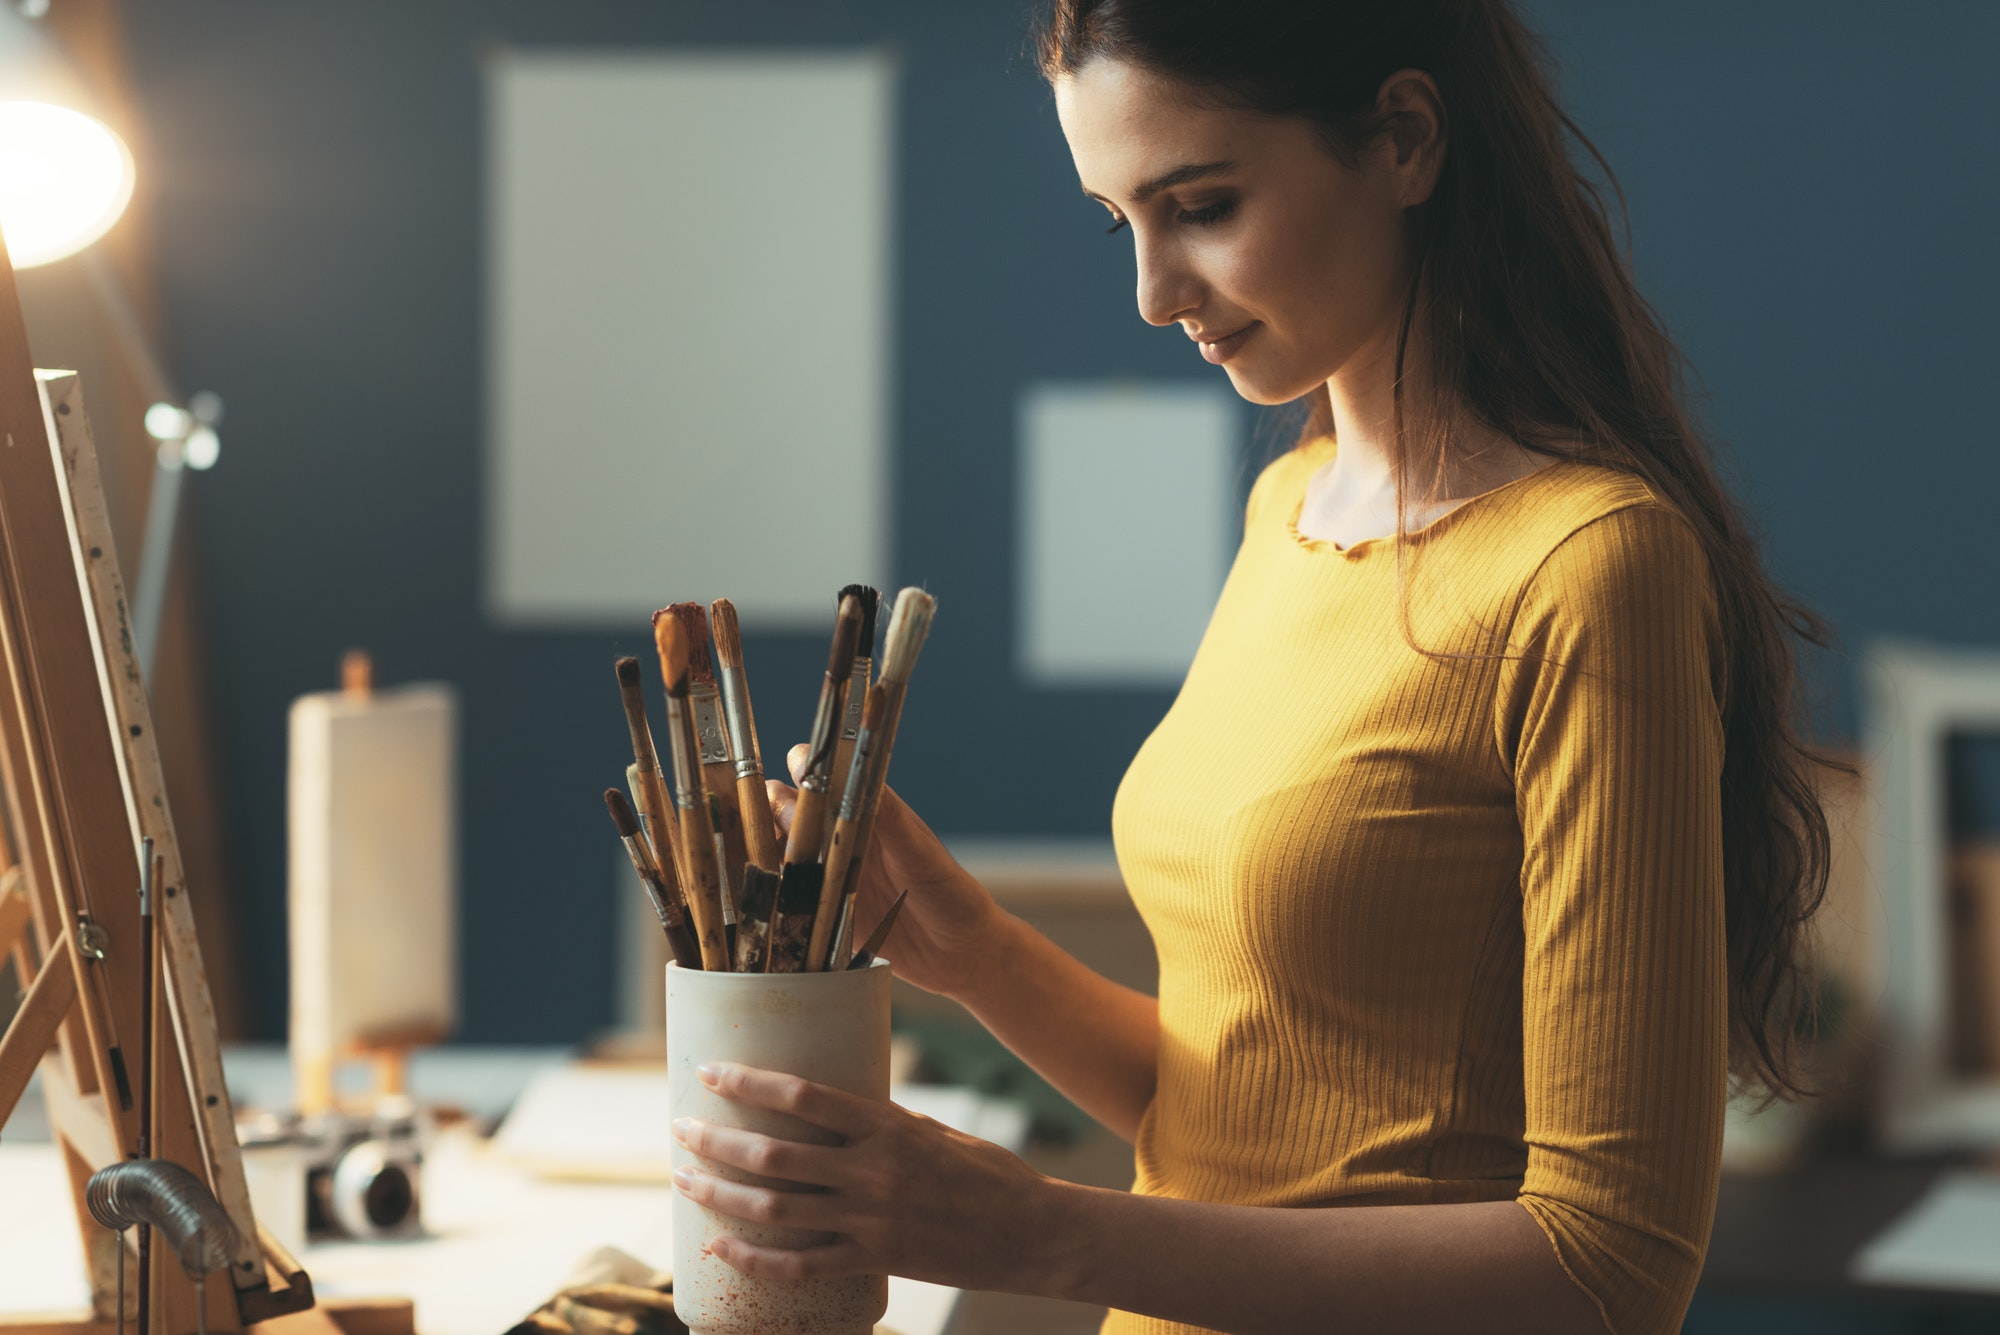 Woman choosing the brushes for her artwork